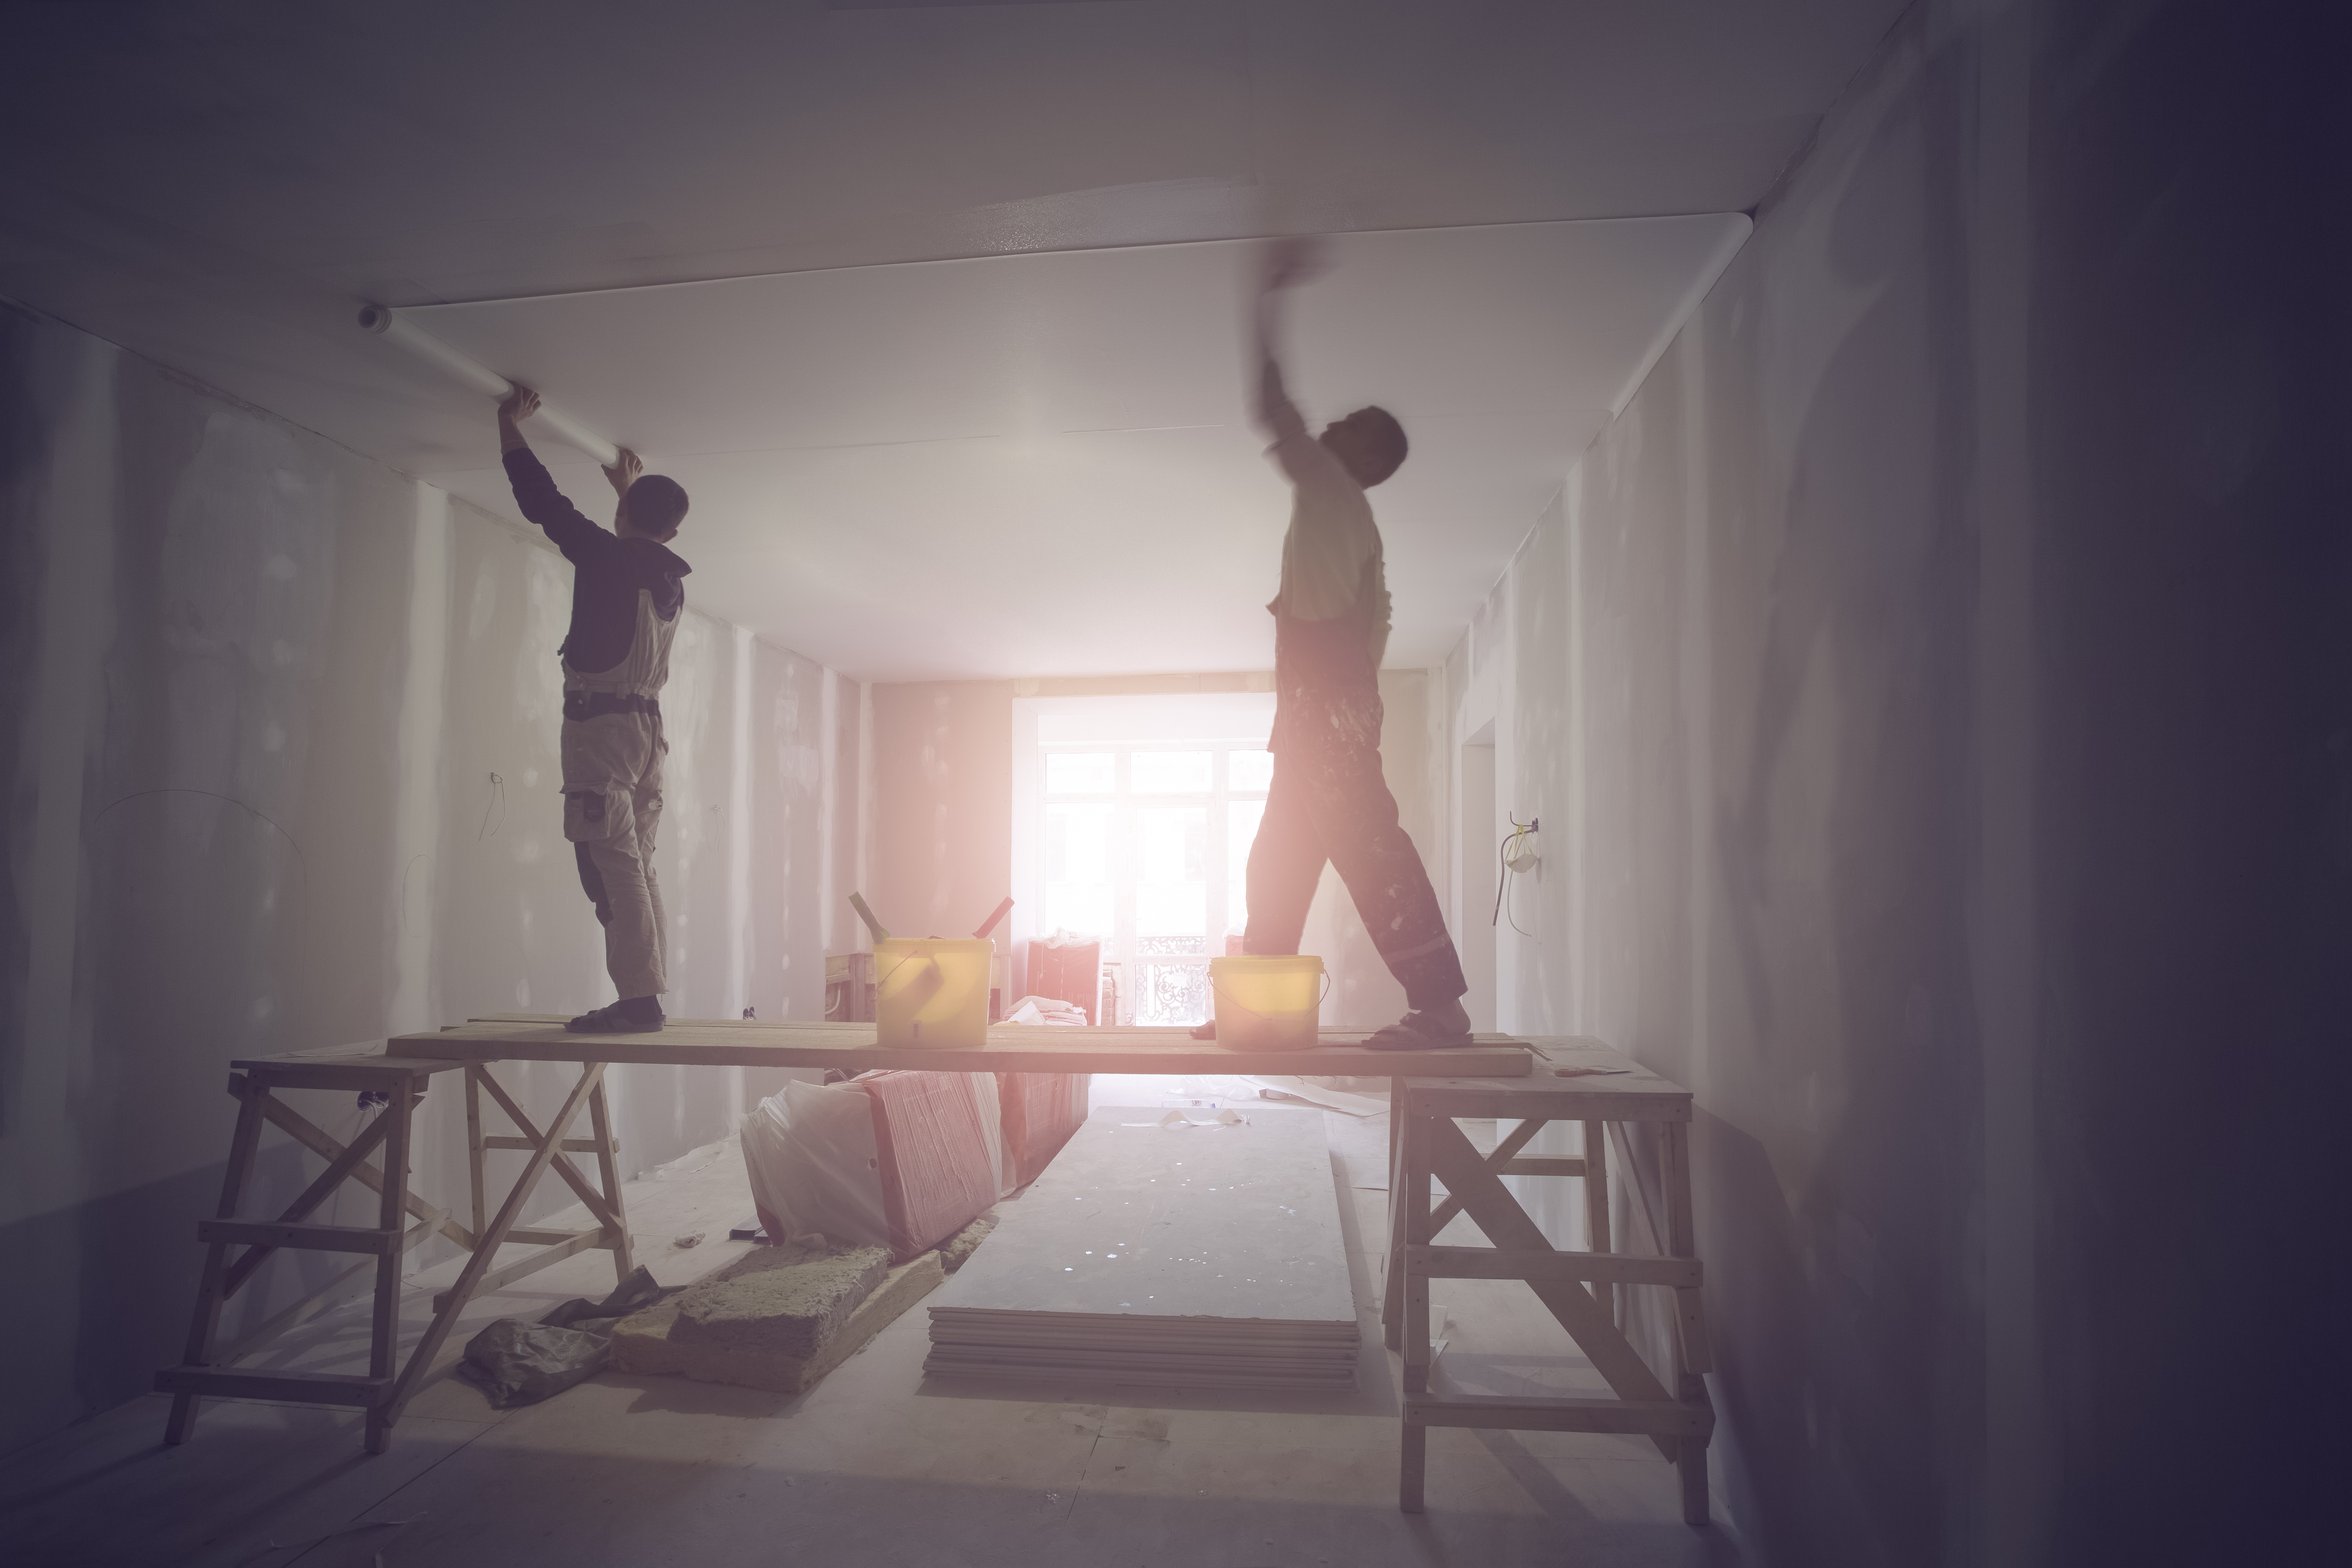 How to Fix Uneven Drywall | Home Guides | SF Gate